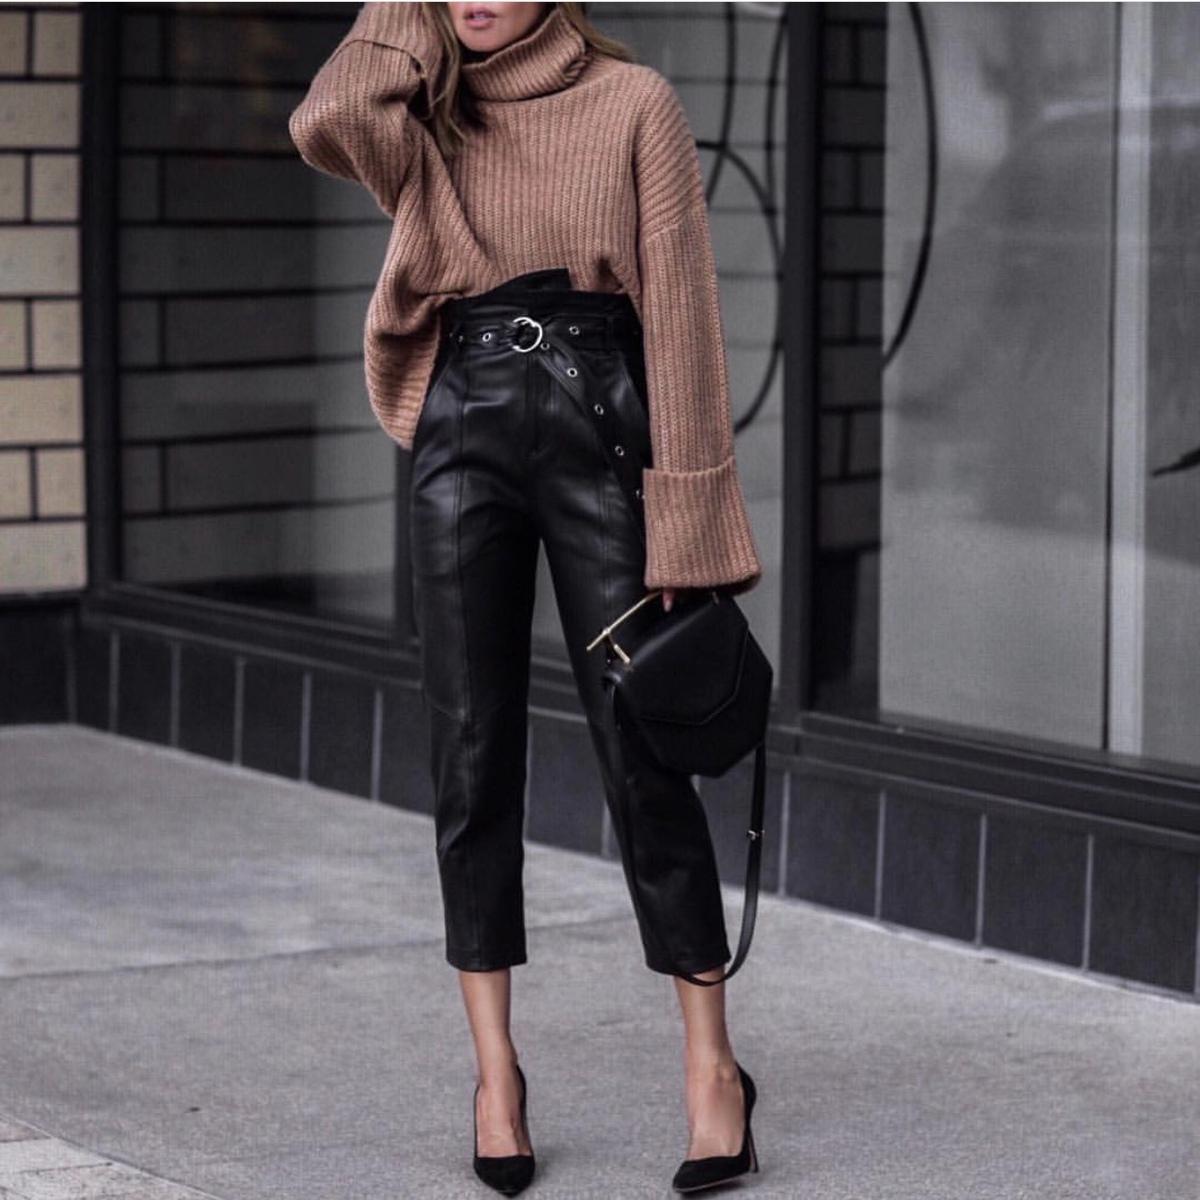 fashion blogger lolario style dresses up in stylish thanksgiving outfits featuring paper bag leather pants and chunky knit sweater | lolariostyle.com